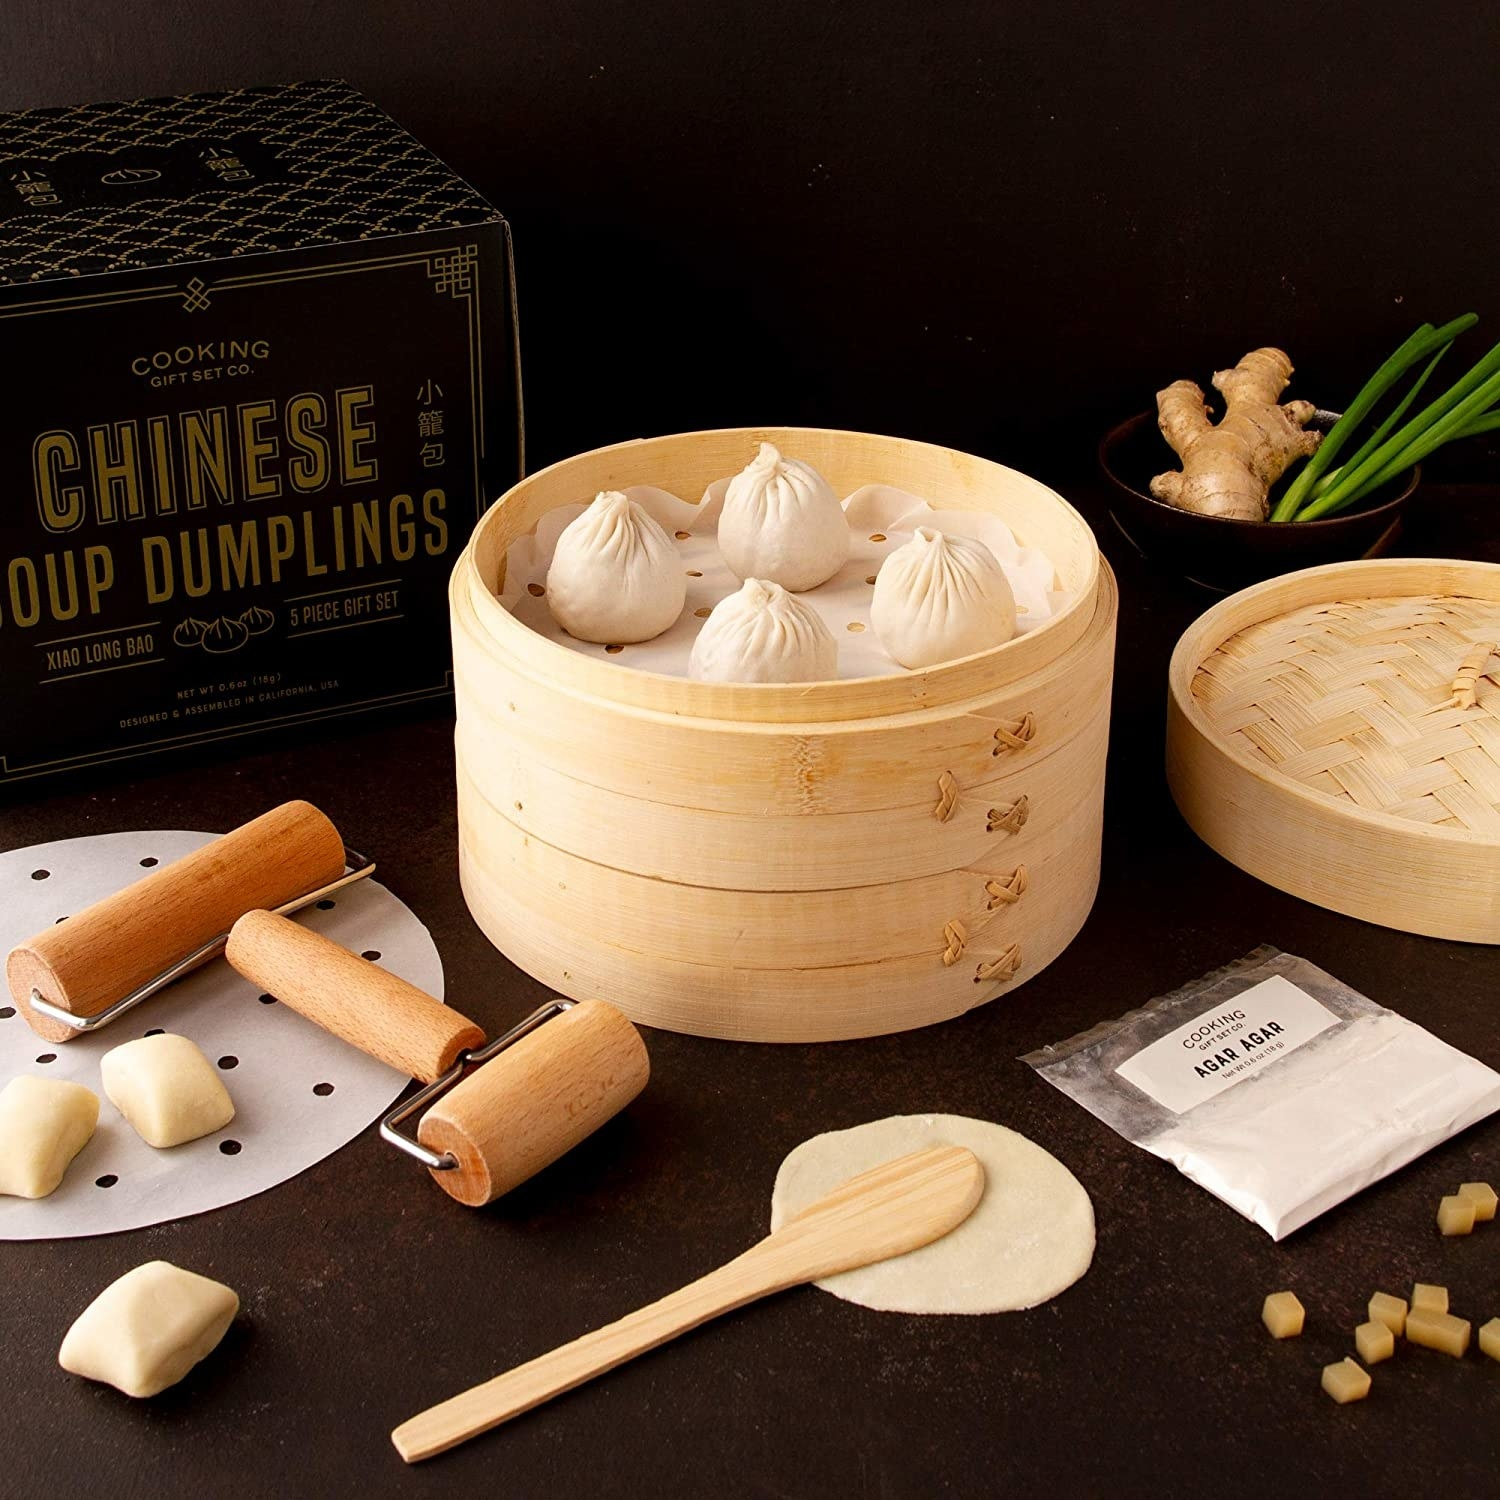 Soup dumplings in wooden basket with tools and dough out around them